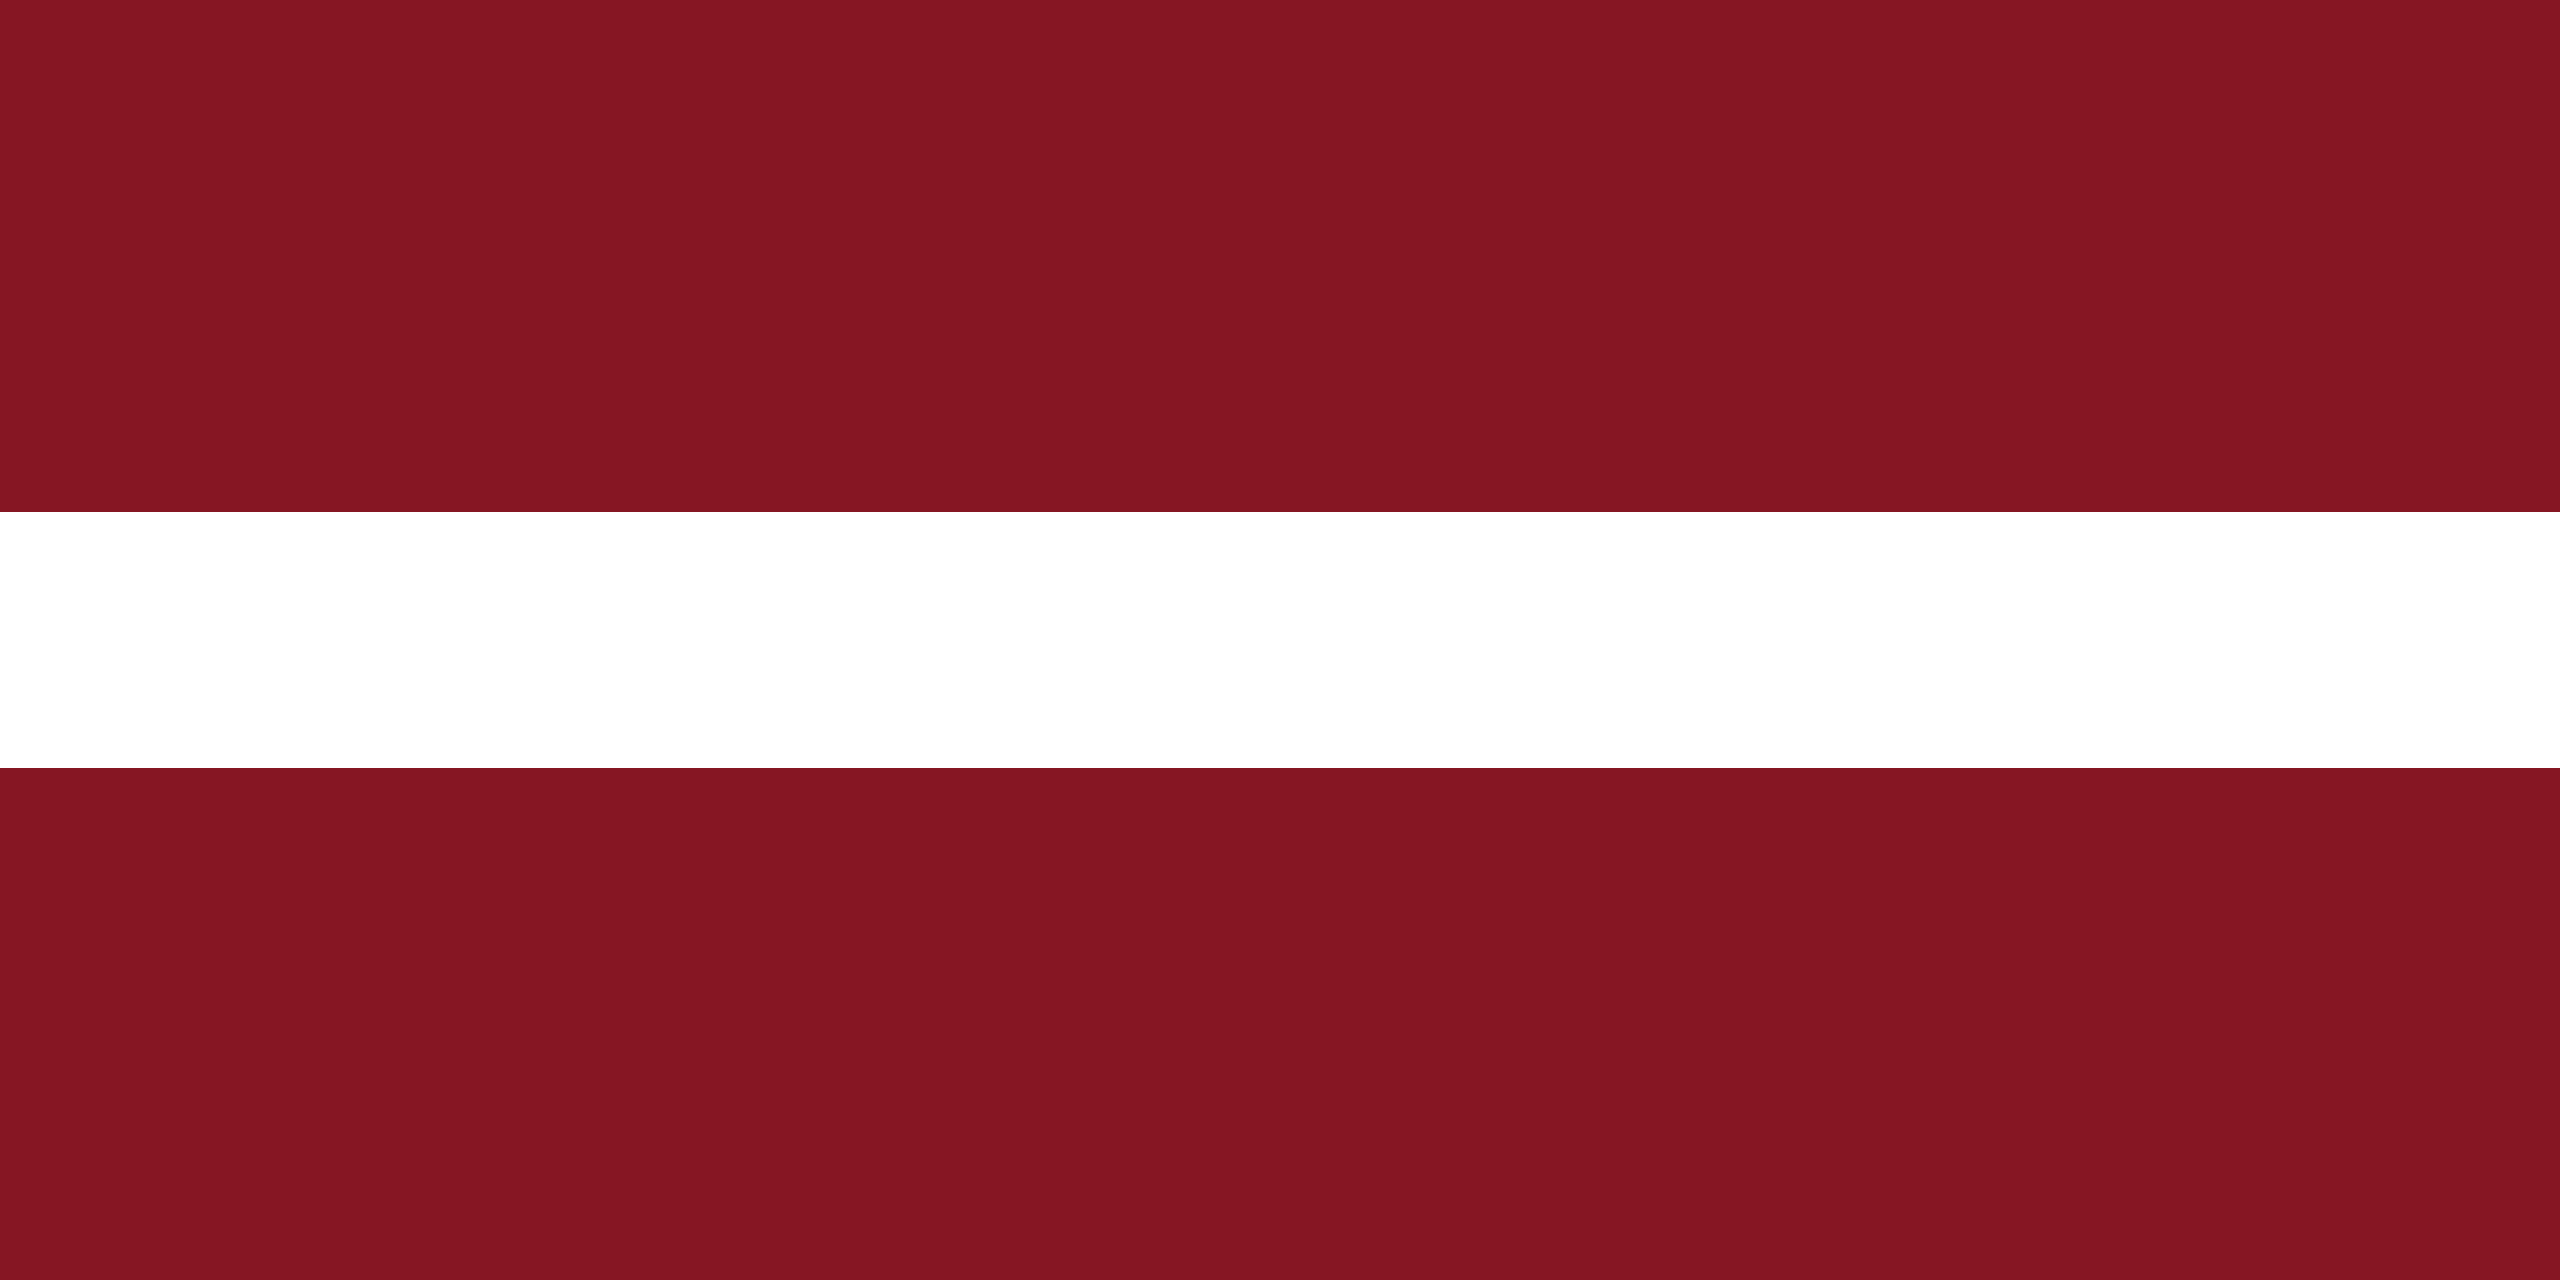 https://aerospaceexport.com/wp-content/uploads/2019/10/latvia.png